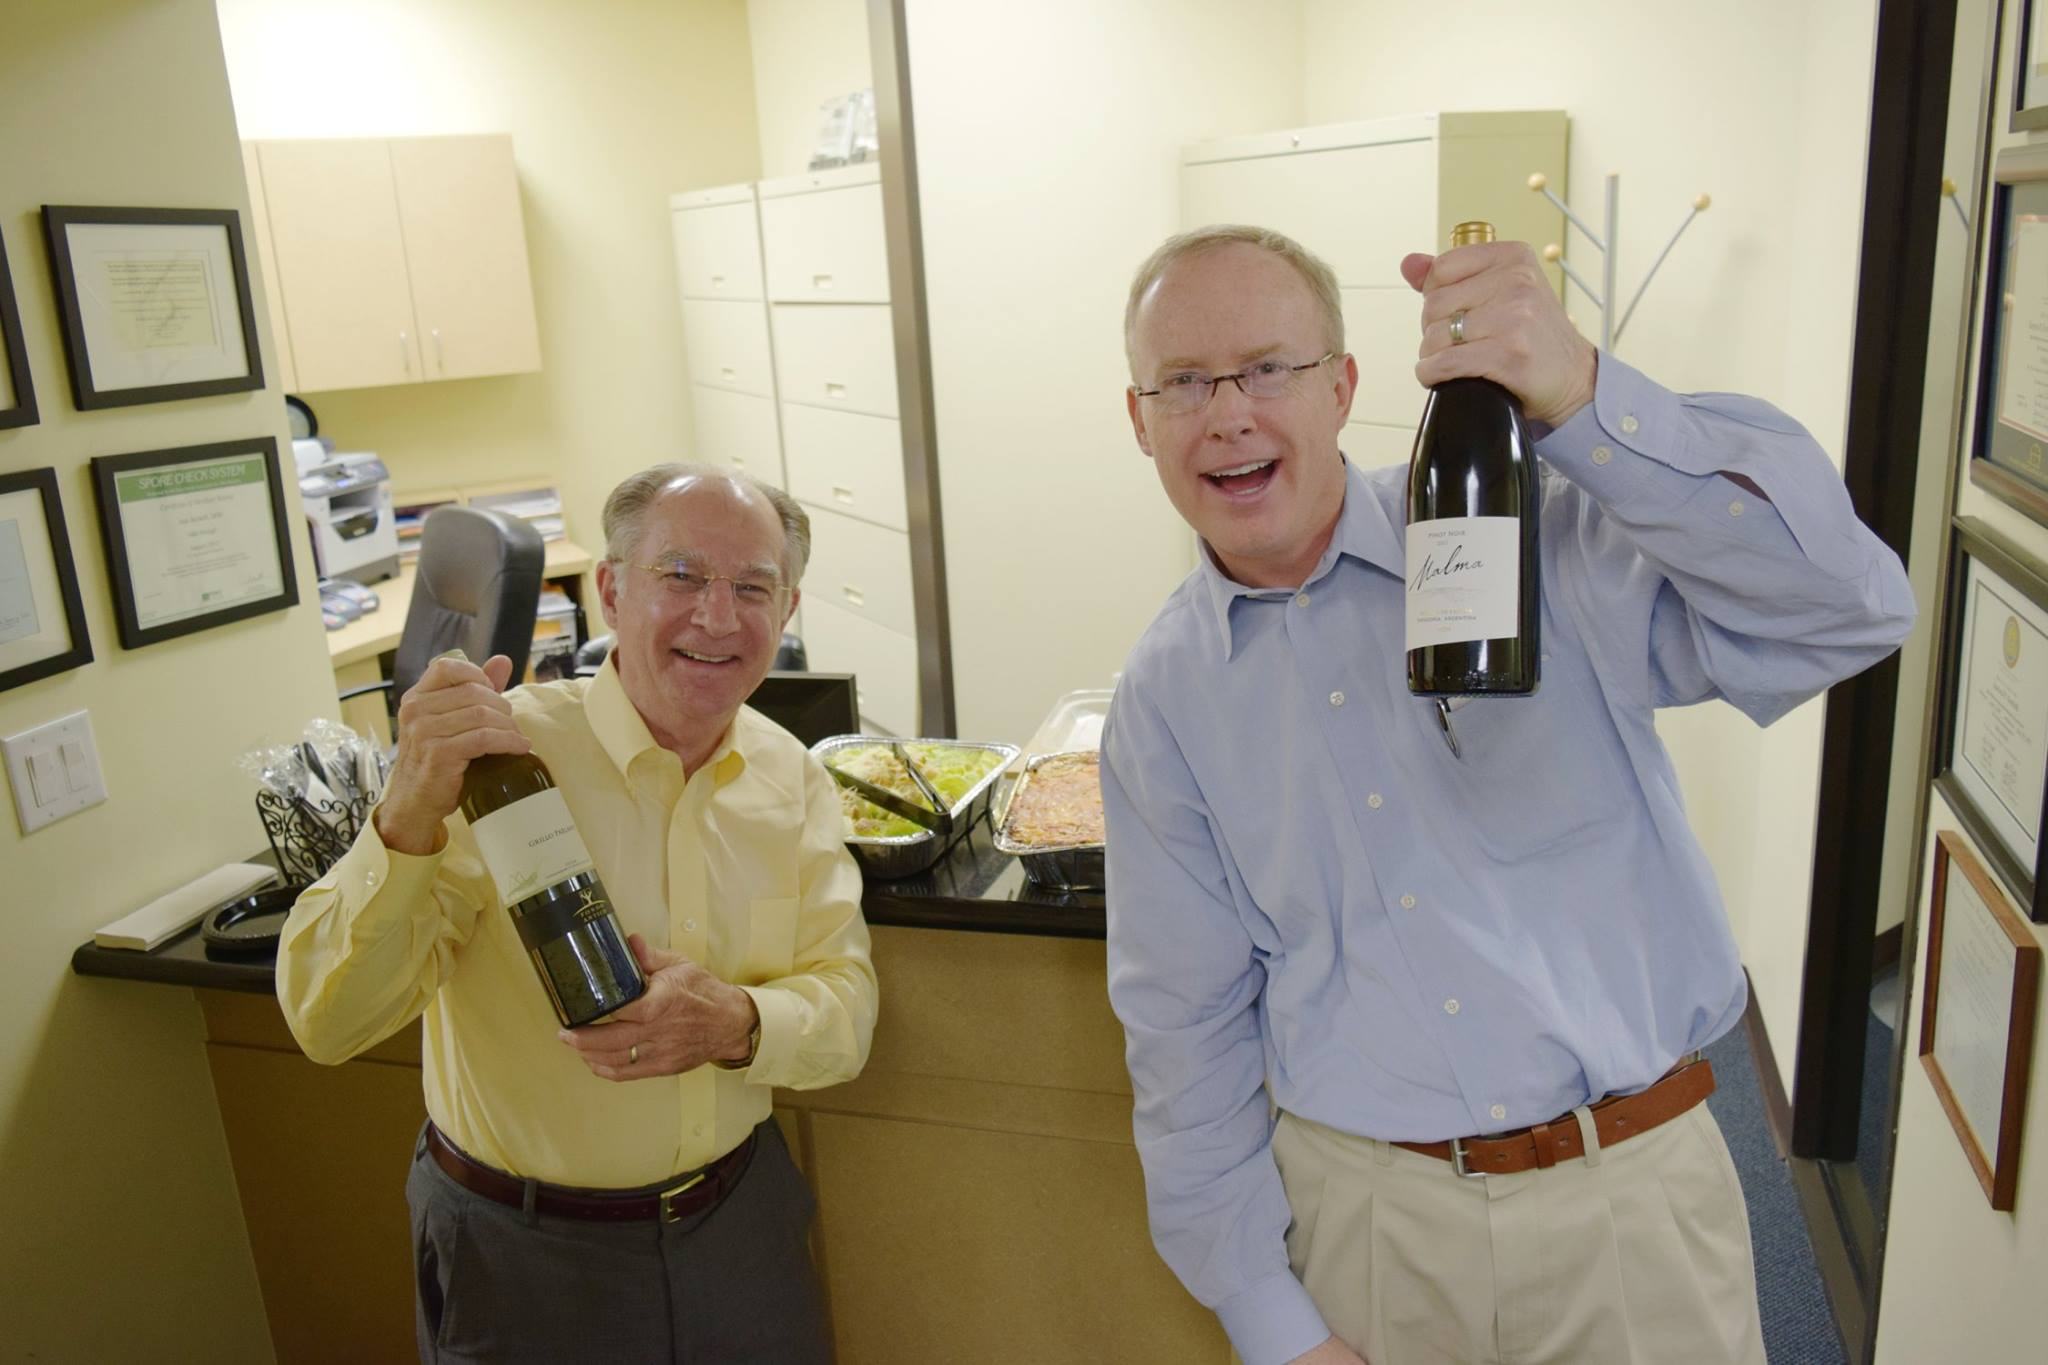 Drs. Ron Gallerano and Marc Magness